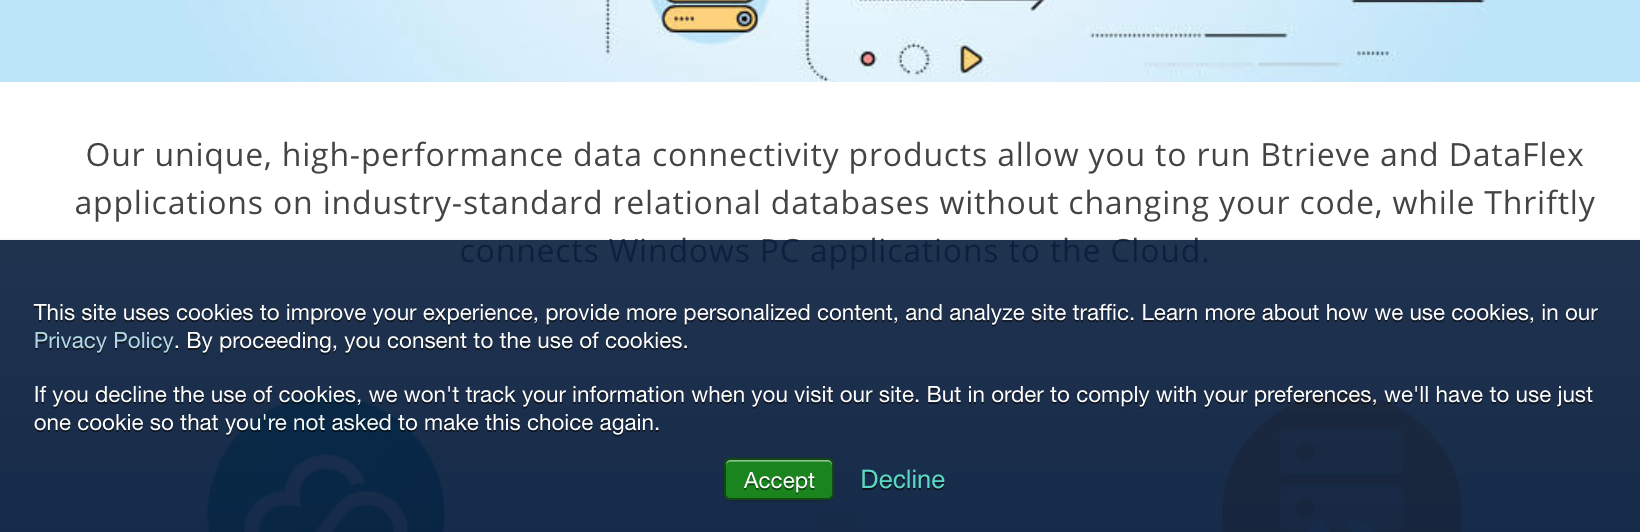 The Mertech cookies notice hyperlinks to our complete Privacy Policy